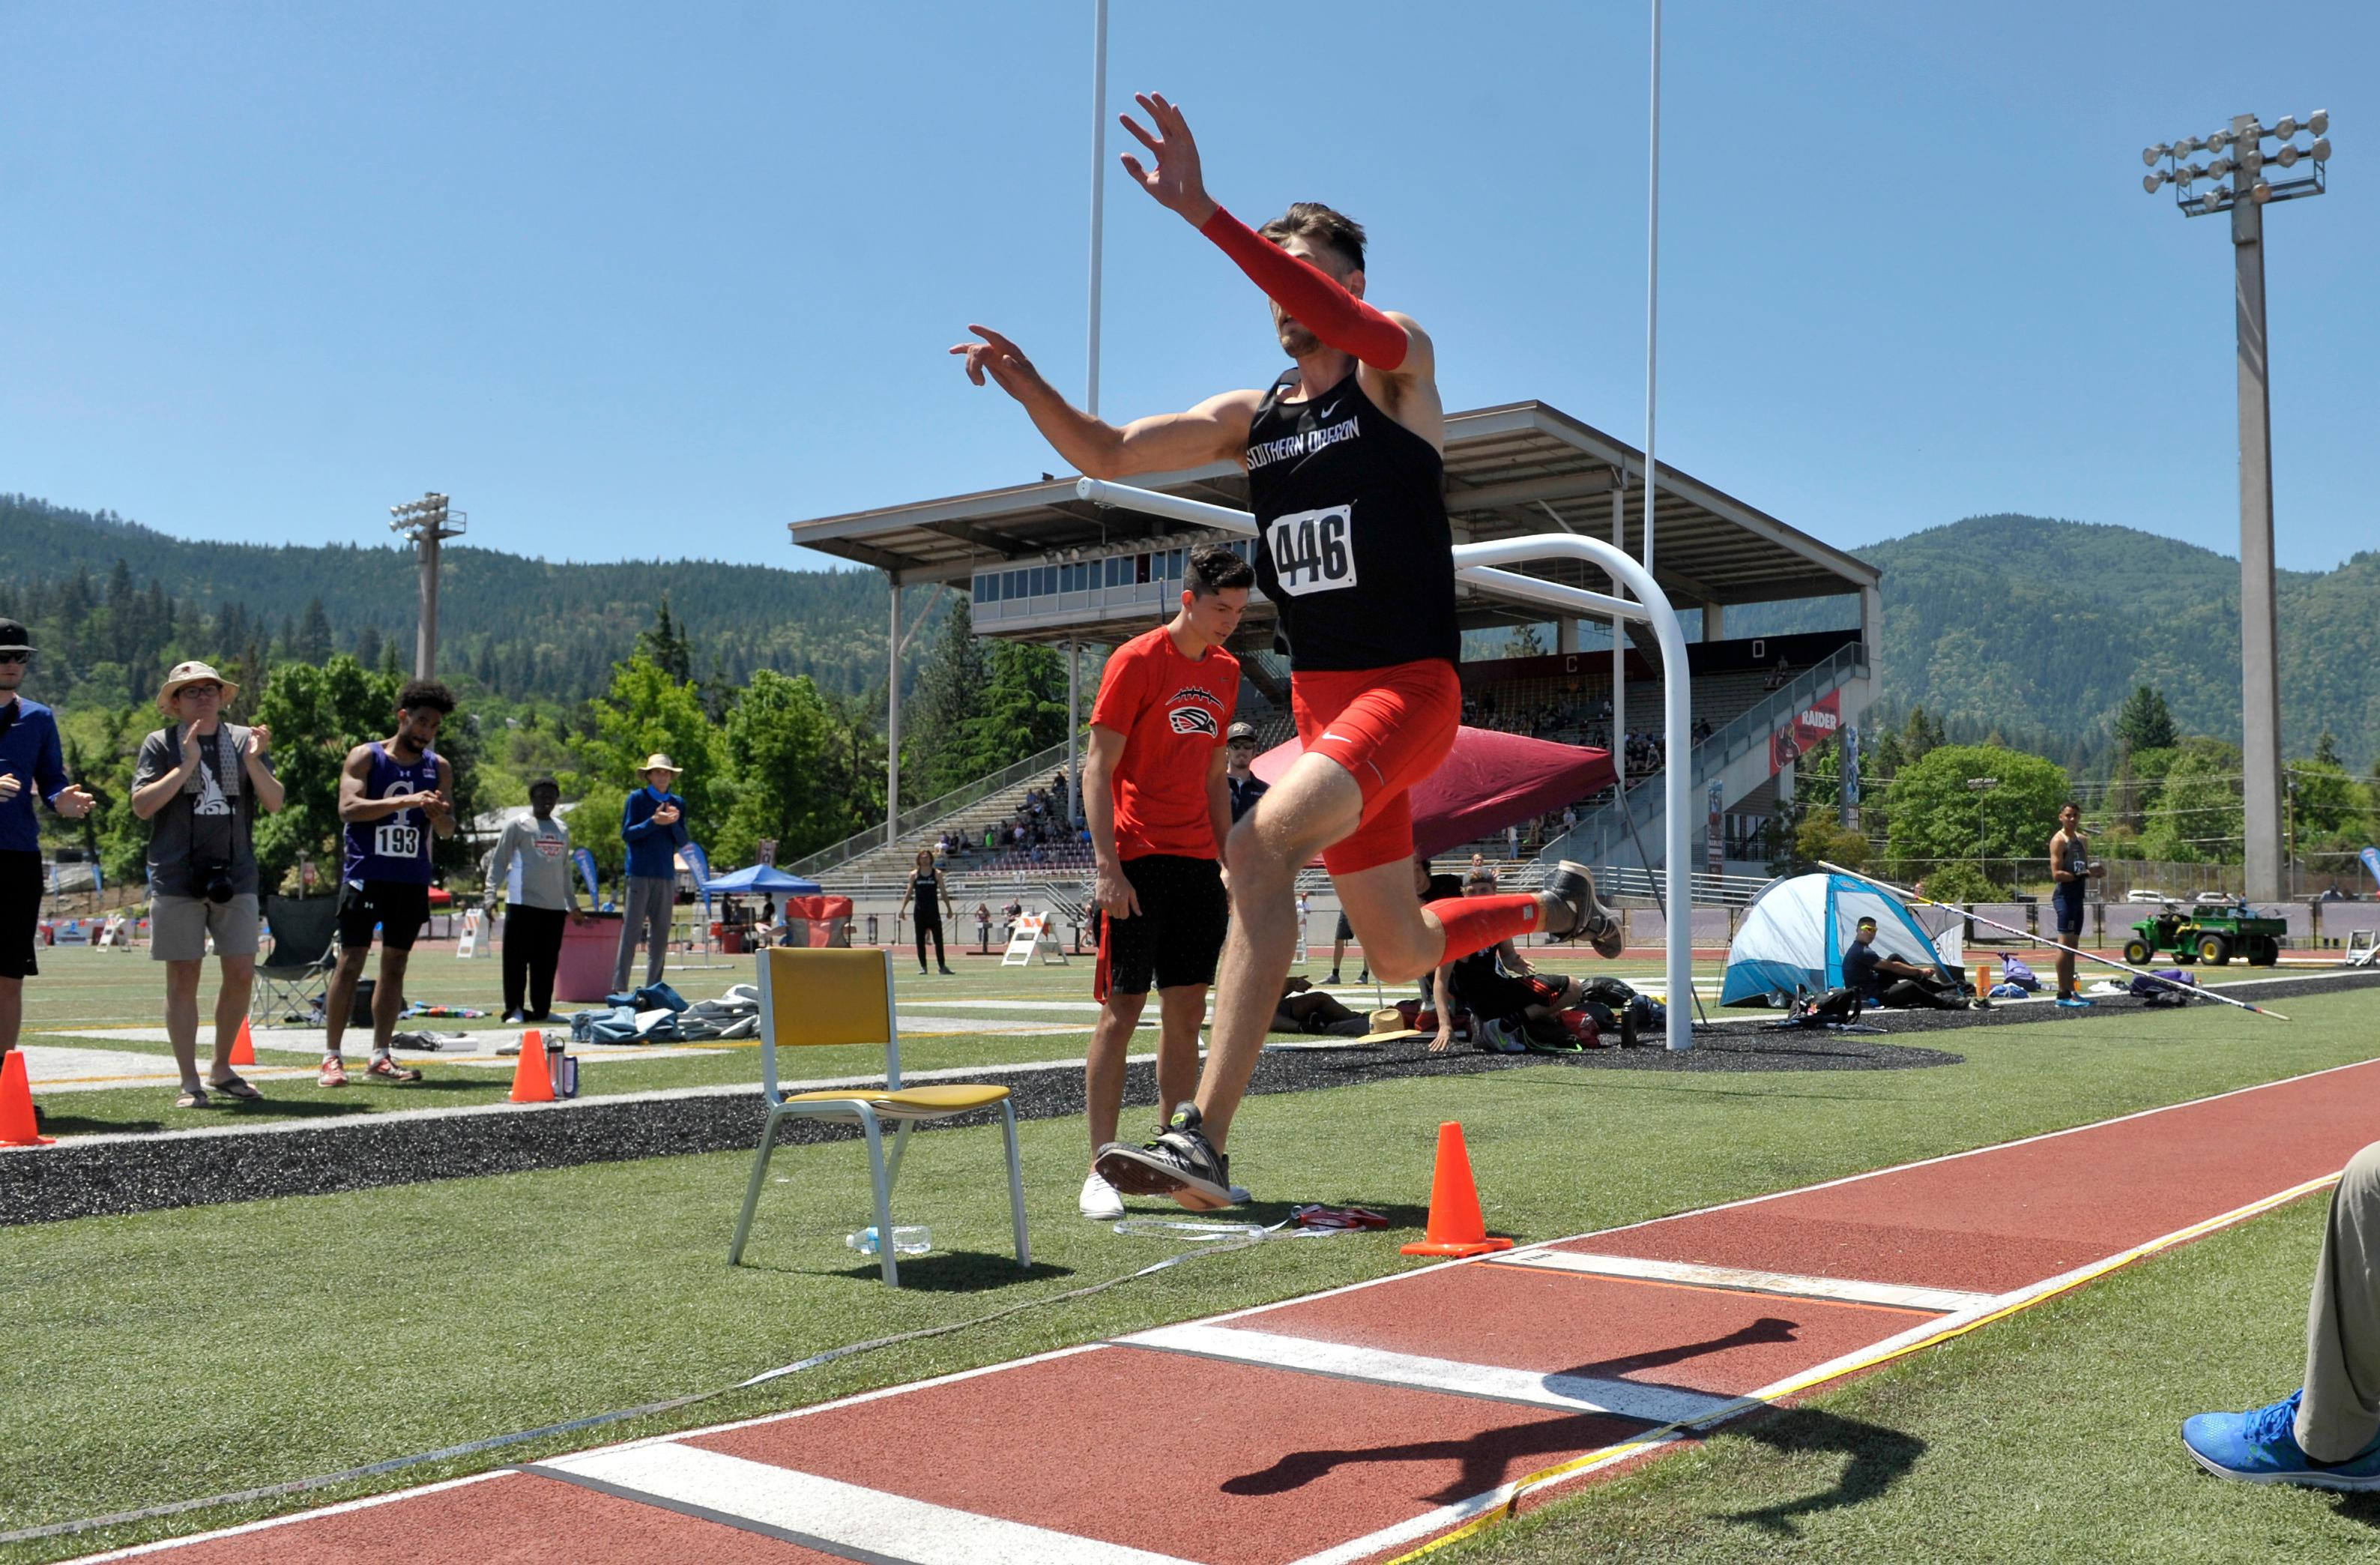 Andy Atkinson / Mail TribuneZach Beltz launches from the board with his last attempt in the finals winning the triple jump with a meet record.